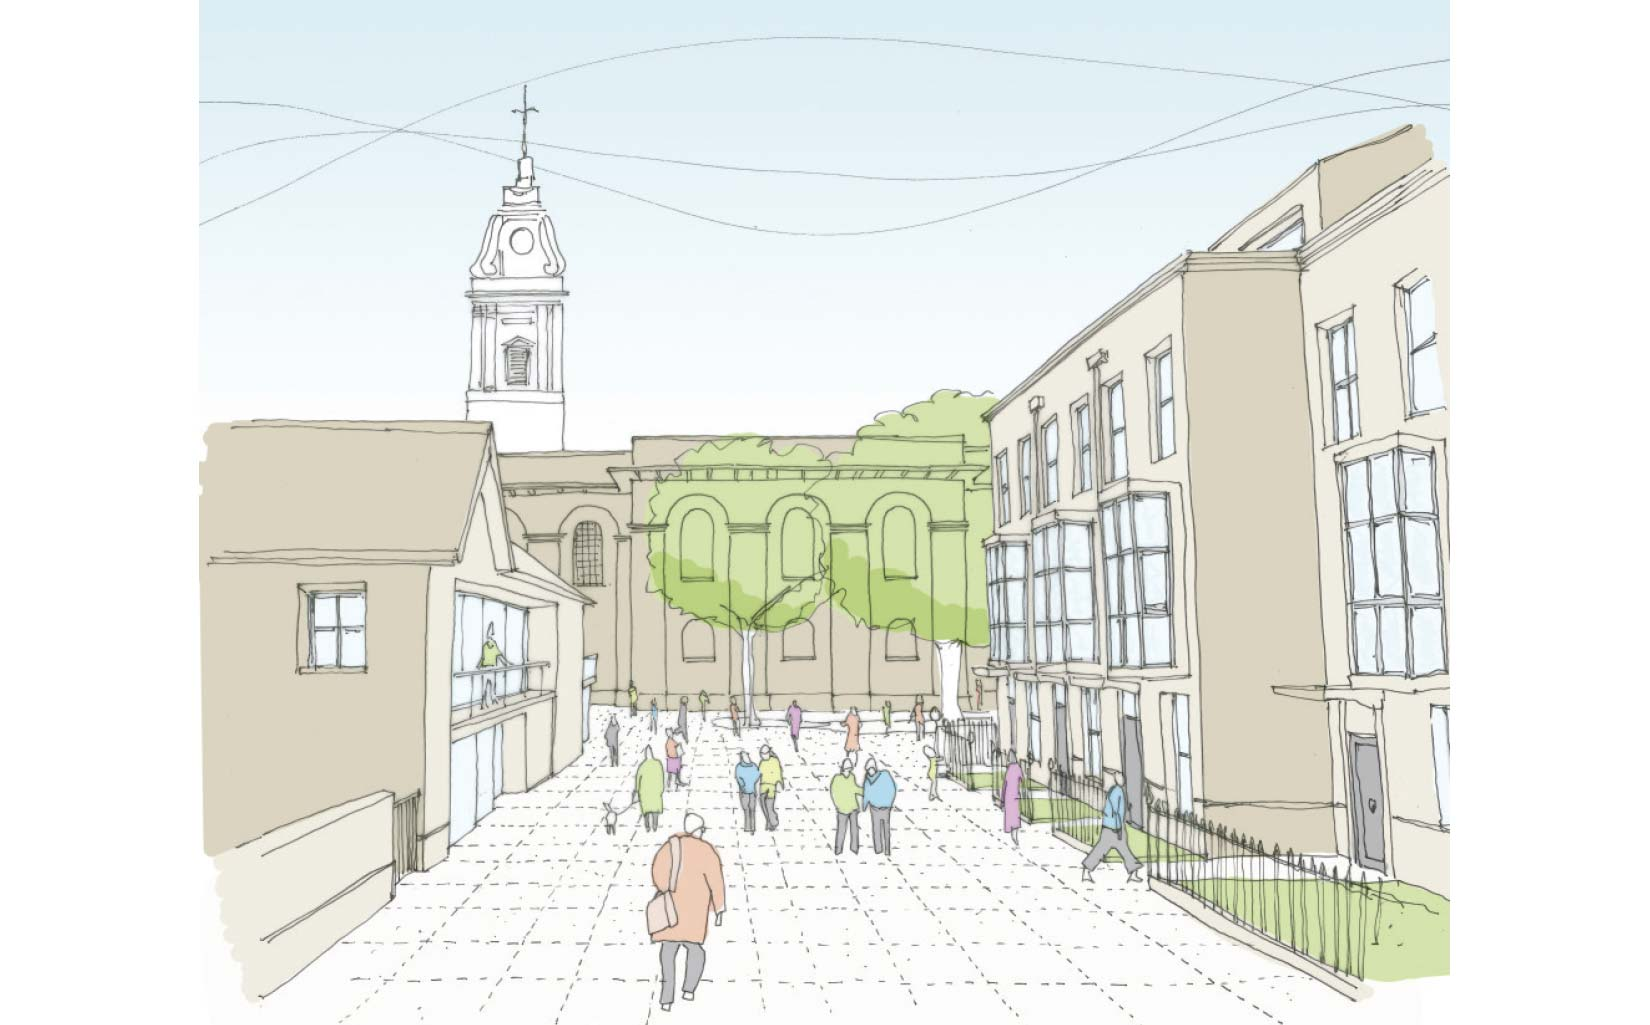 St John's Gardens, Hackney, London, Early sketch perspective showing the new development and approach to the St John-at-Hackney church through the new courtyard